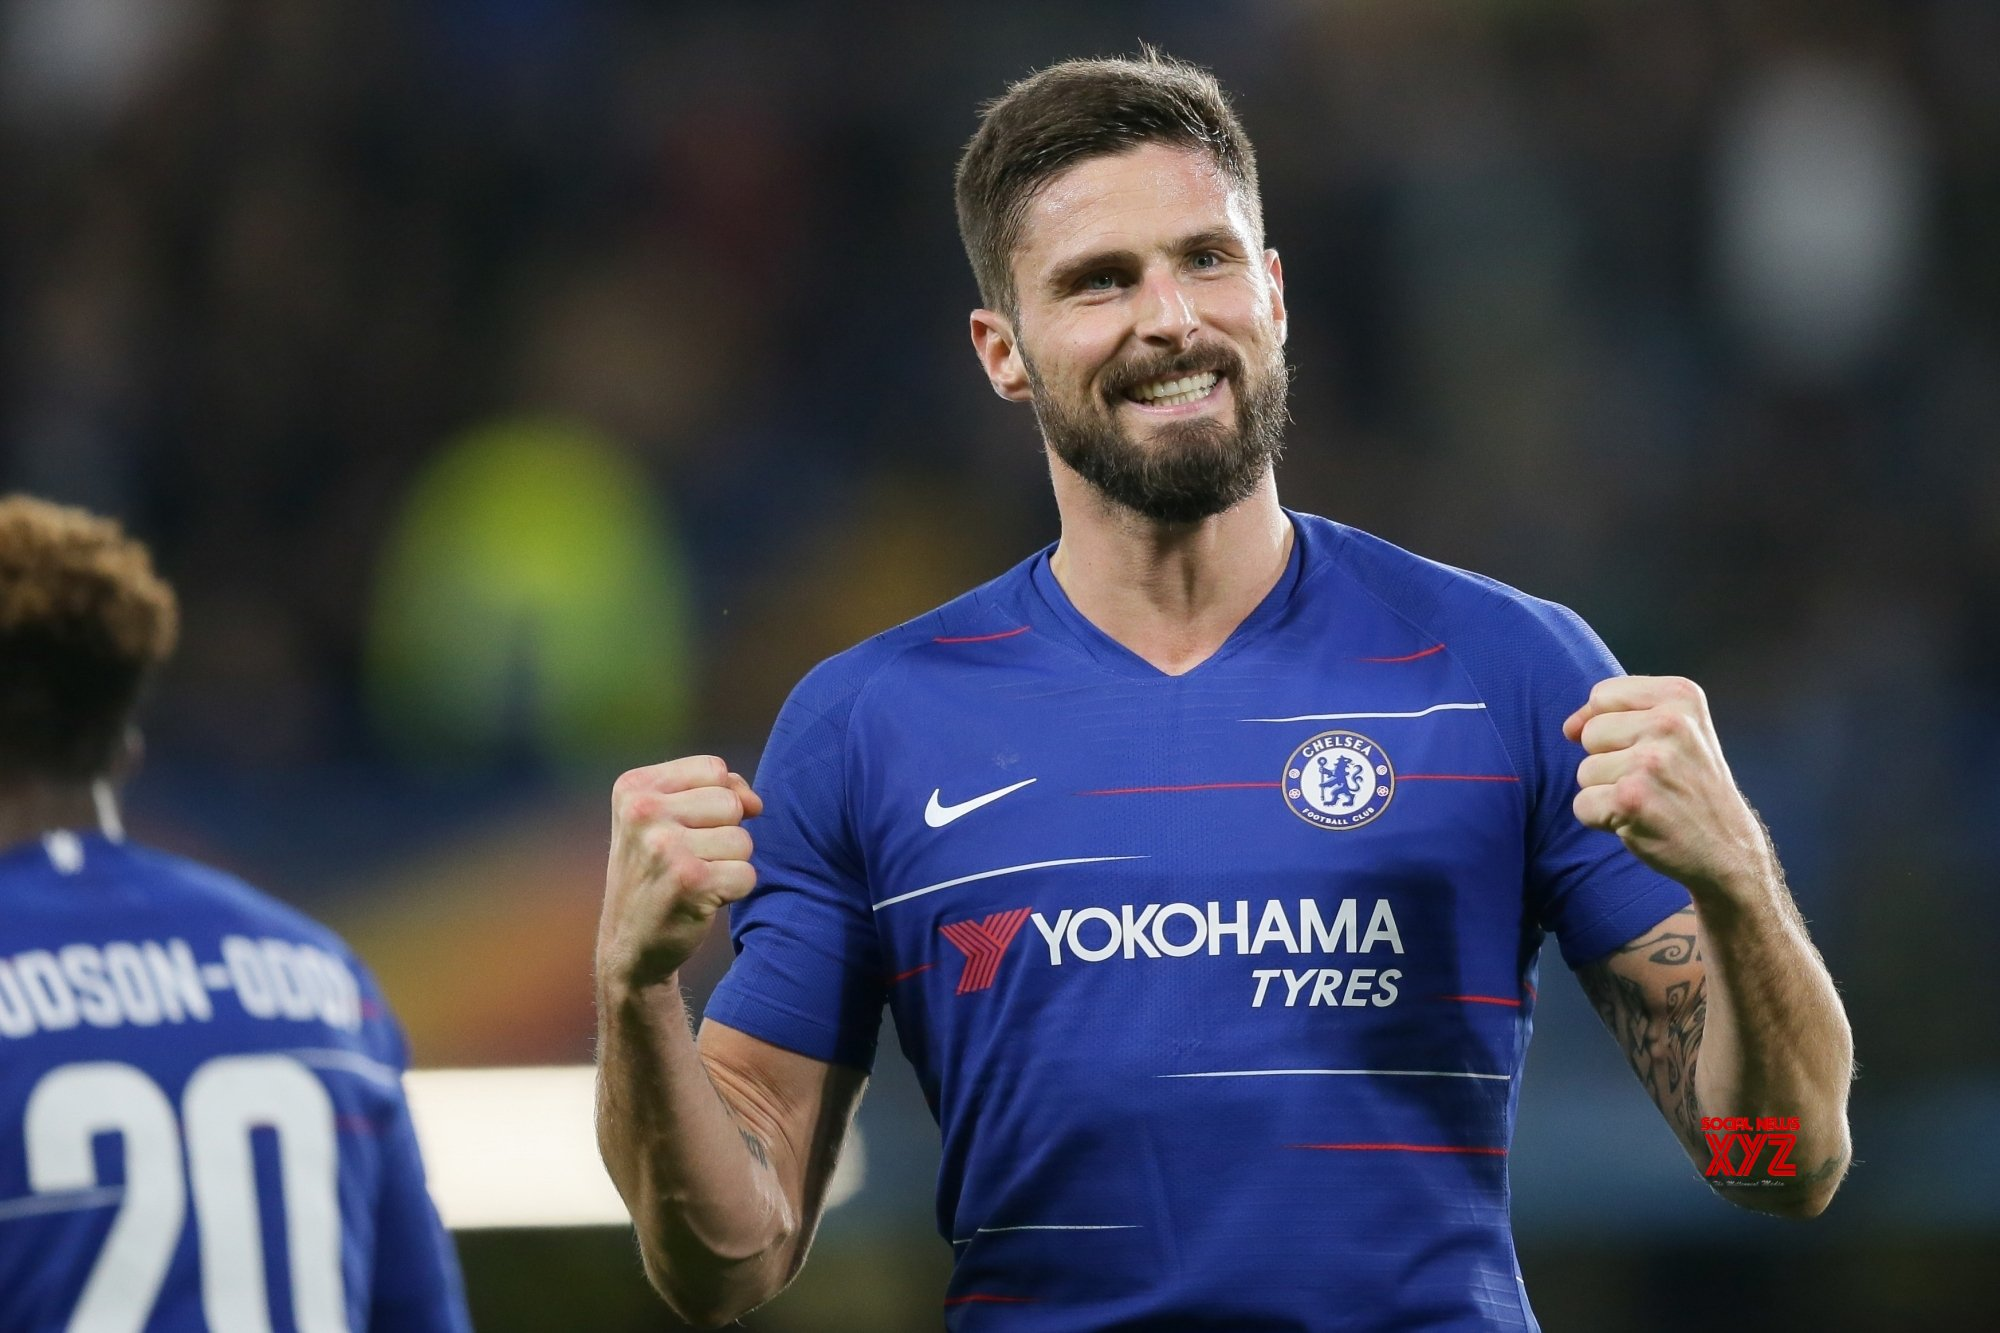 Giroud, Caballero sign one-year contract extension with Chelsea